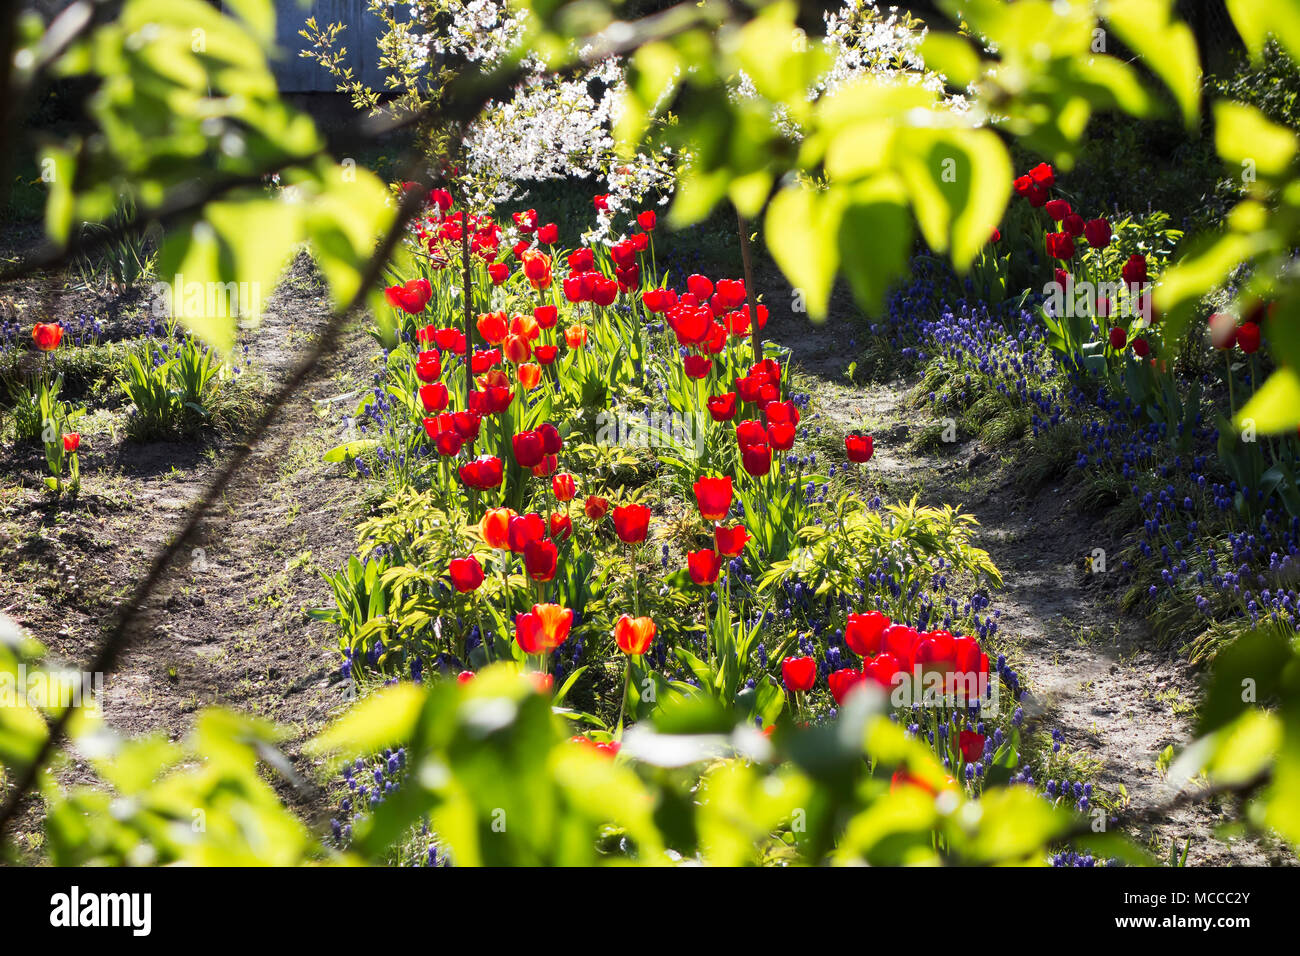 Beautiful natural flowers in private stock photos beautiful blooming private garden flower beds of tulips in spring first plan blured green tree izmirmasajfo